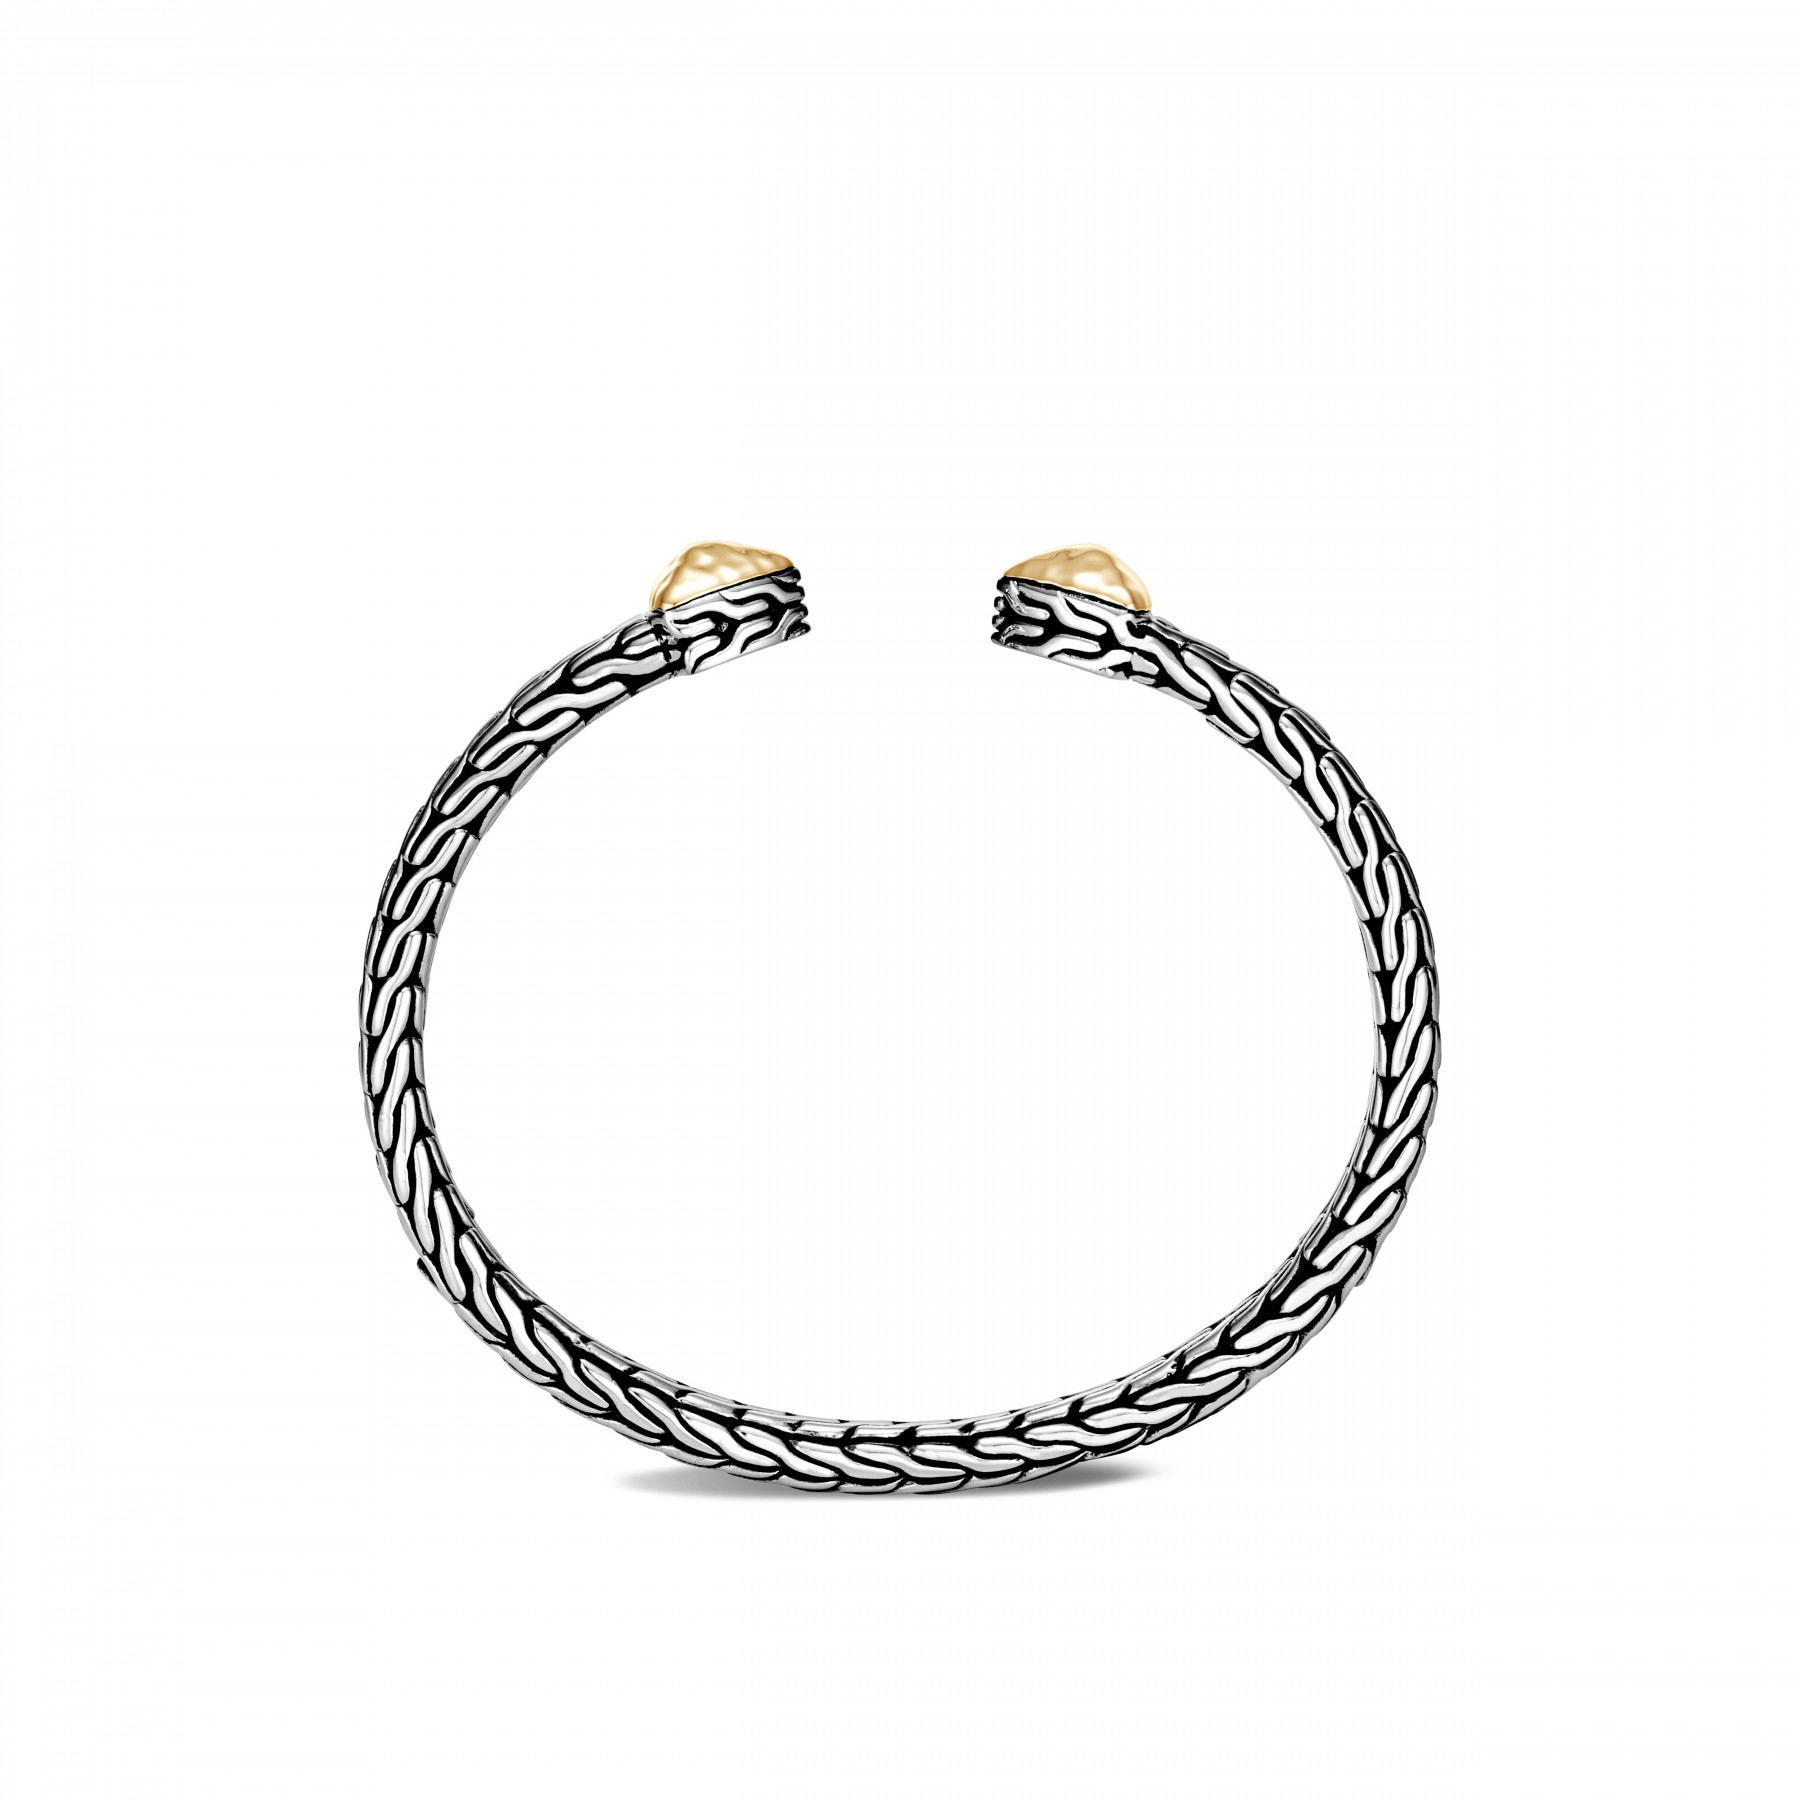 John Hardy Classic Chain Silver and Gold Cuff Bracelet side view